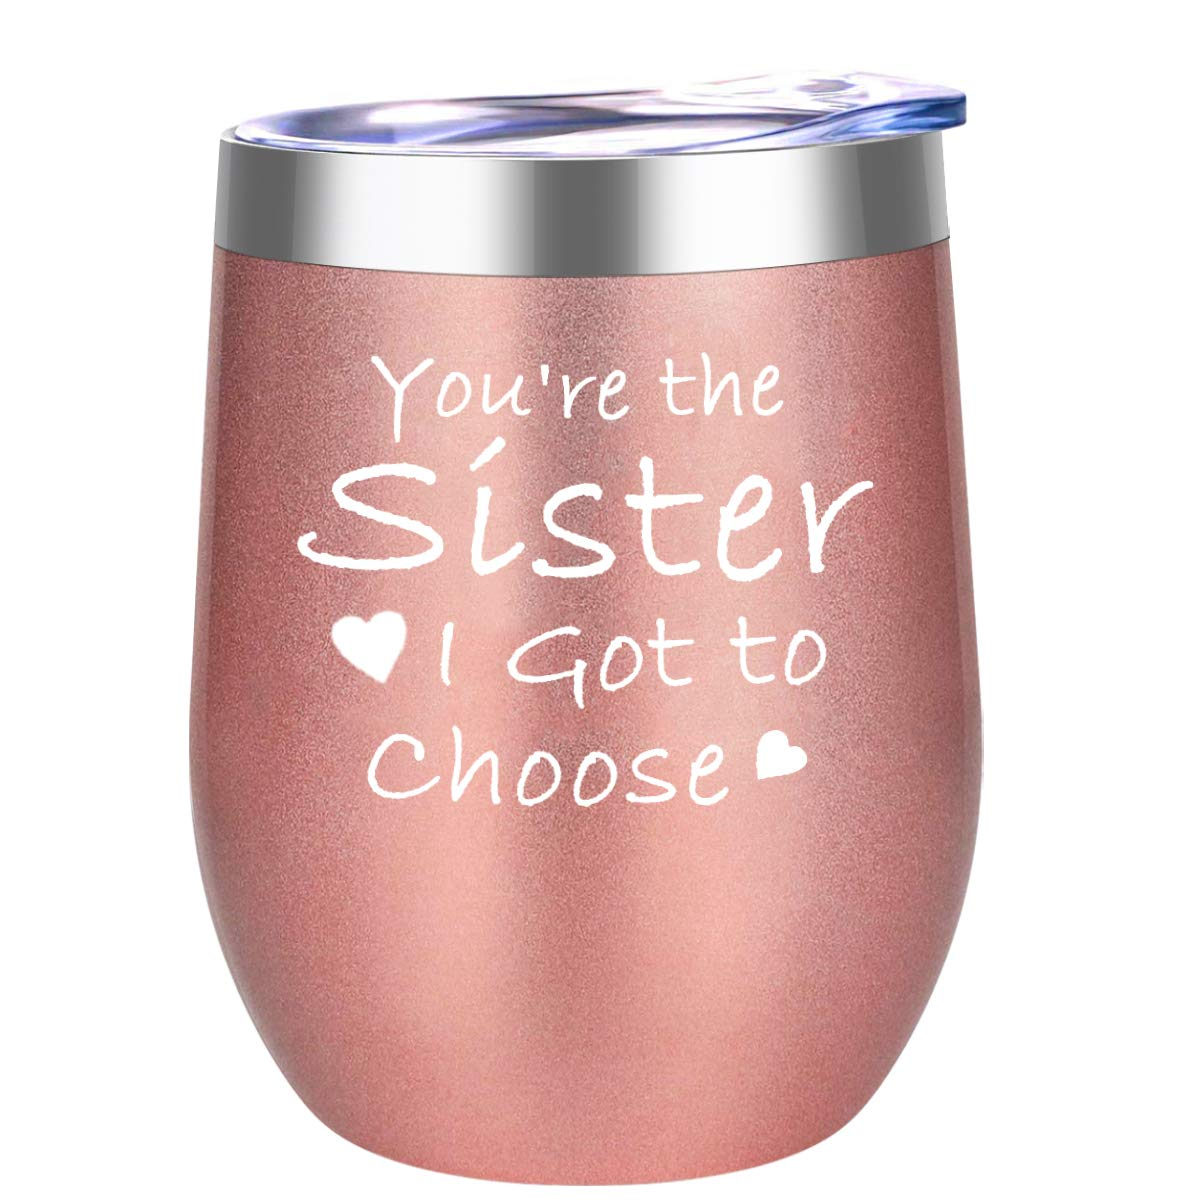 DOERDO You're the Sister I Got to Choose-Gifts for Soul Sister,Best friend,Women,Bestie,Unique Gift for Birthday,Anniversary,Wedding -Insulated Wine Tumbler Cup with Lid(12oz,Rose Gold)